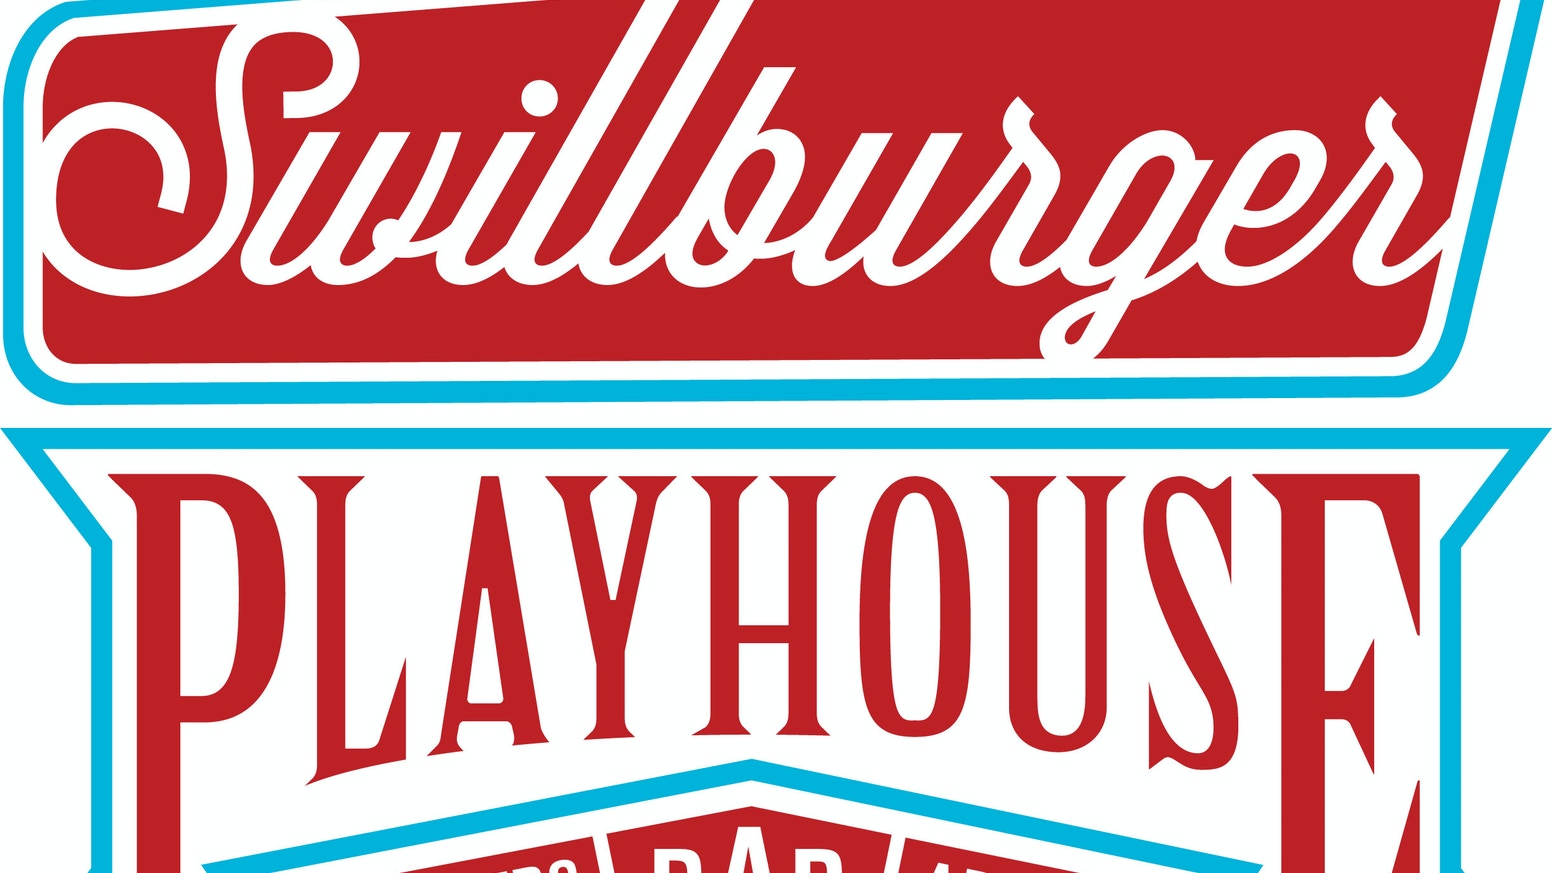 The Playhouse is a one stop destination for craft and classic beverages, vintage video games, and a modern American burger joint.